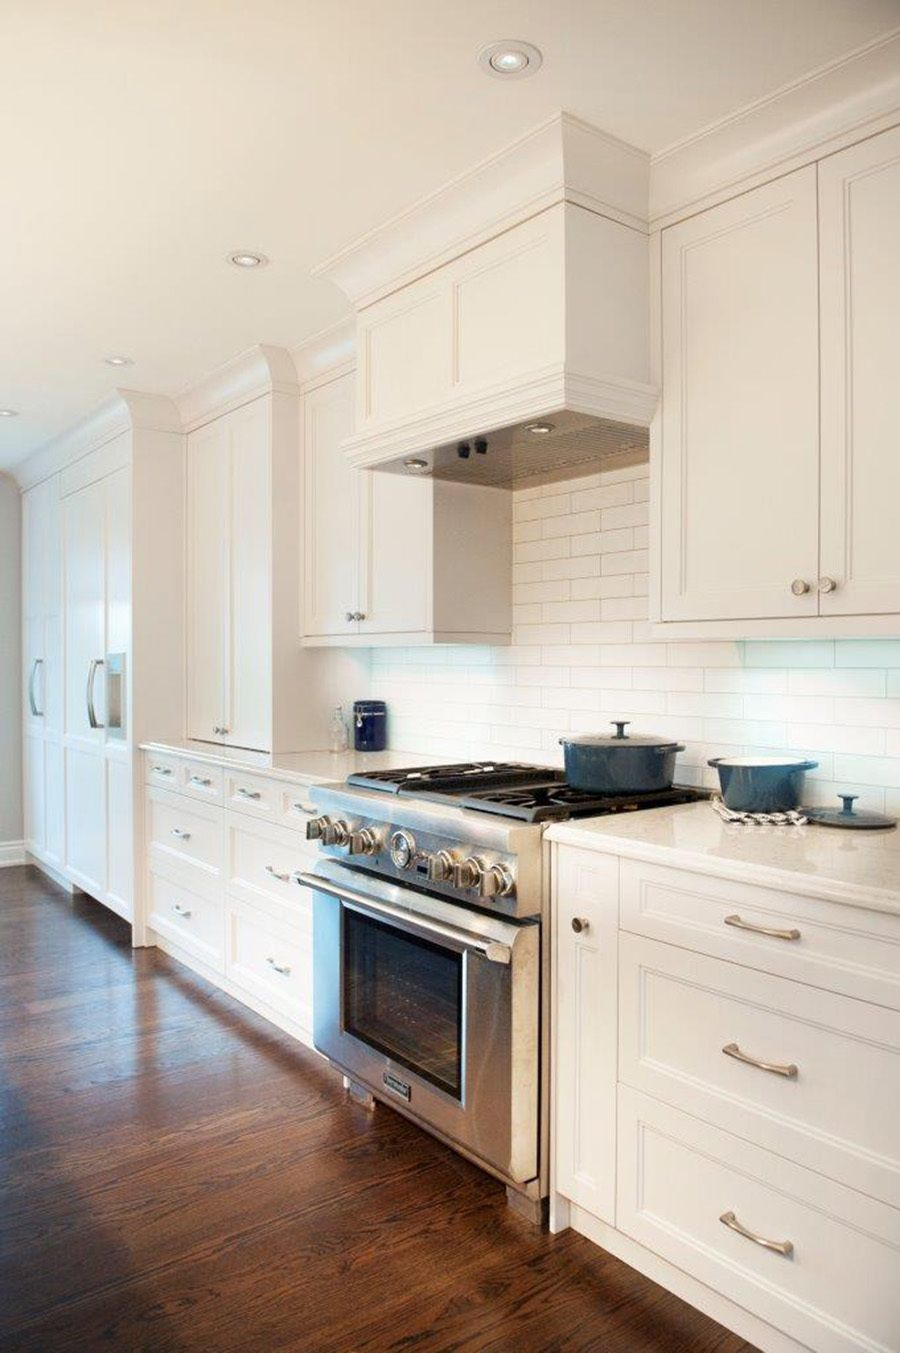 A Dream Home Renovation Complete with Oversized Kitchen Island ...